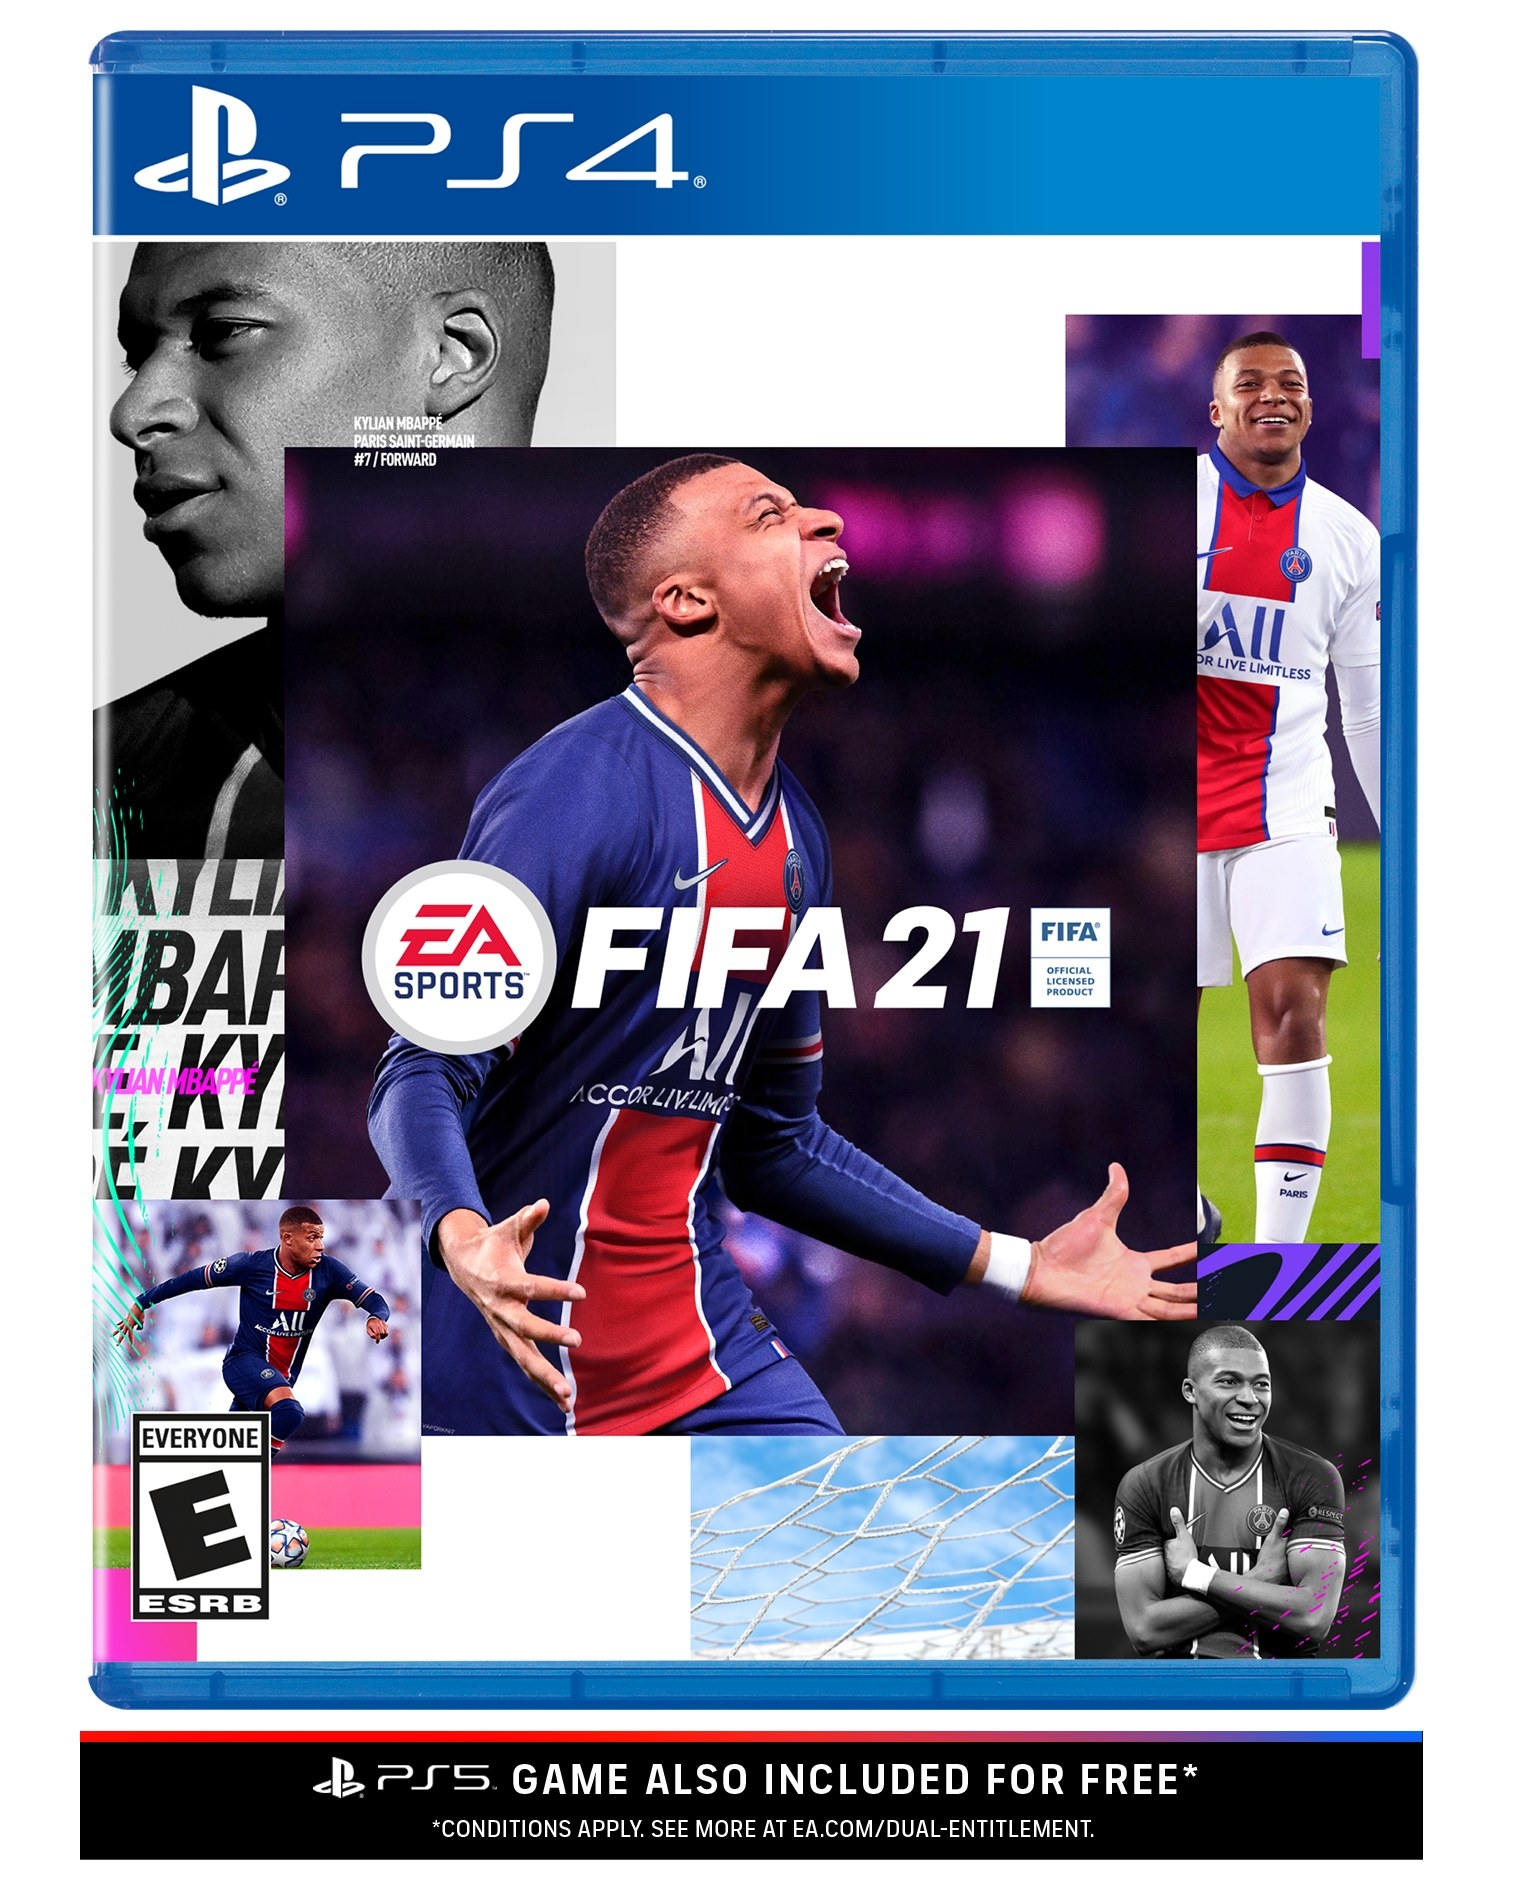 fifa 21 ps4 video game package